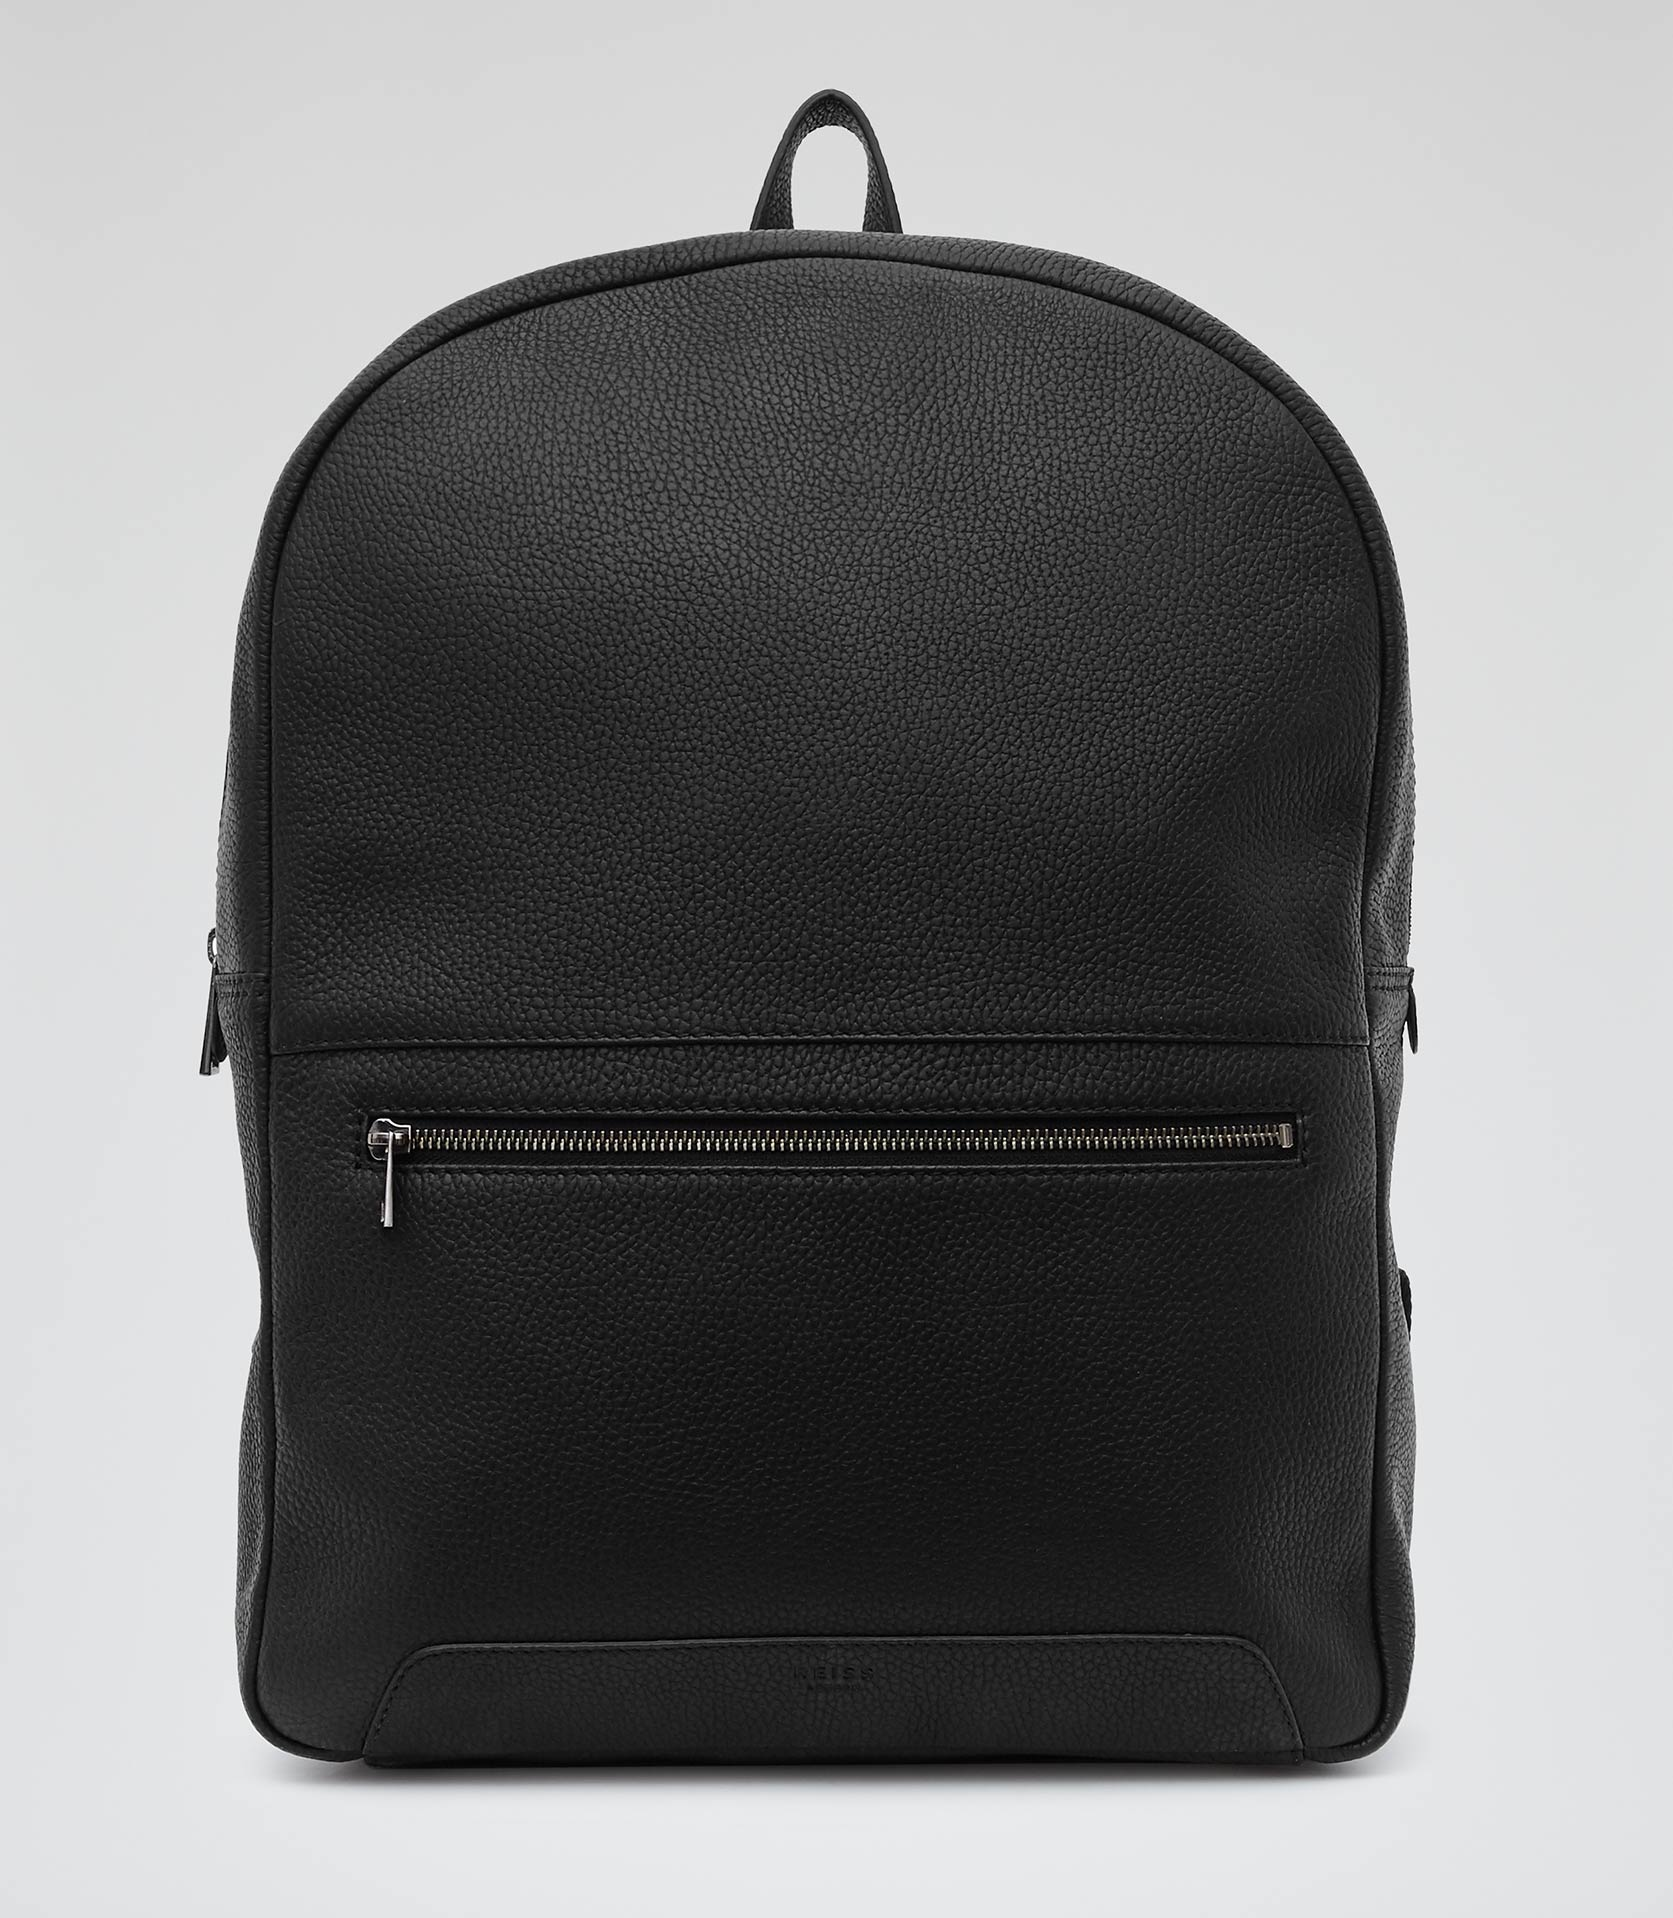 Mens Black Leather Backpack IMVQjrhI